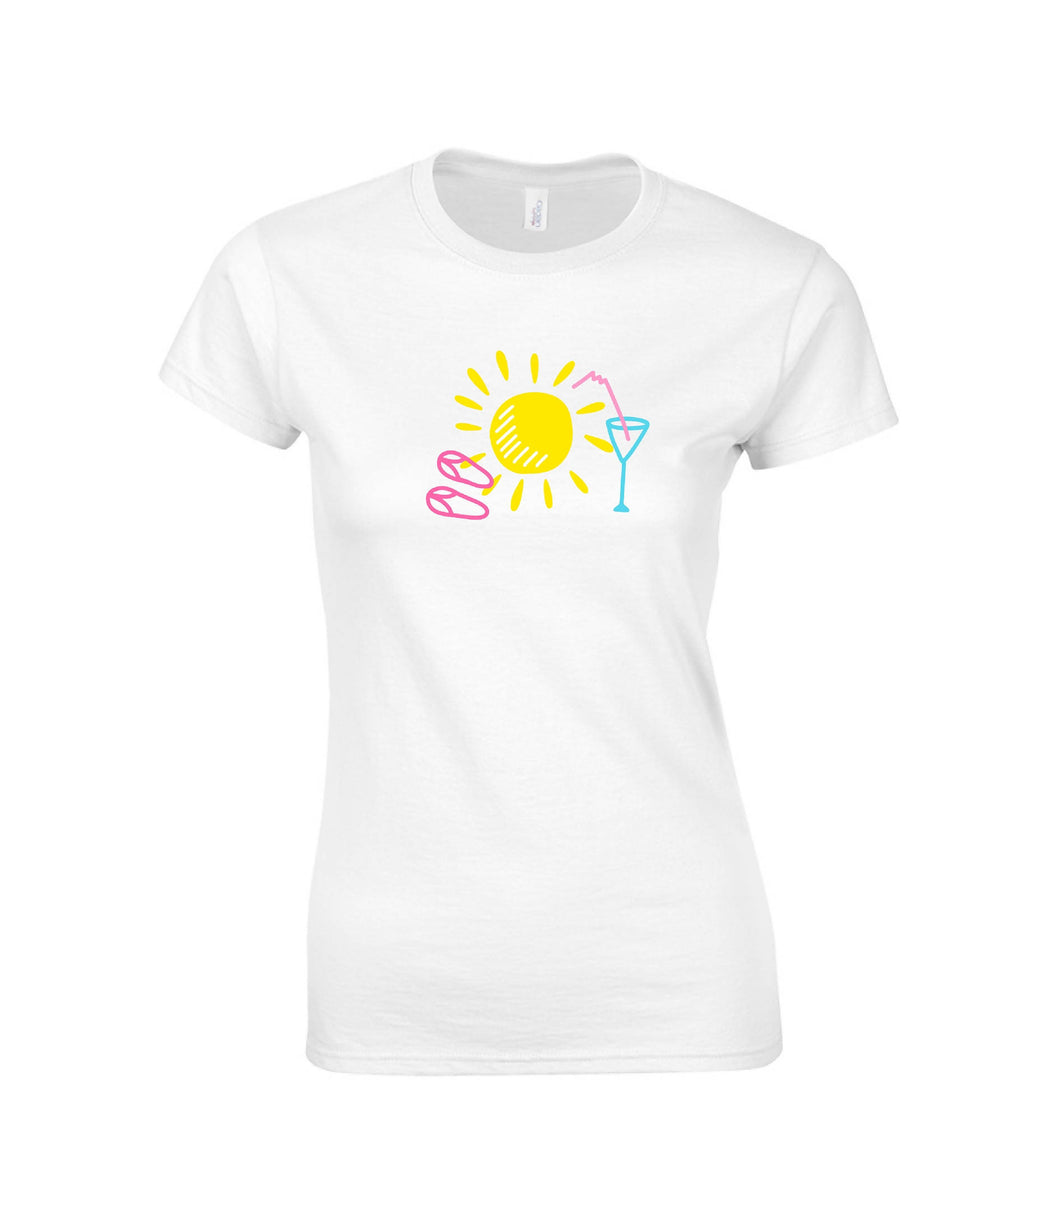 Ladies Short Sleeve T-shirt Nap Sun, Glass and Flip Flops